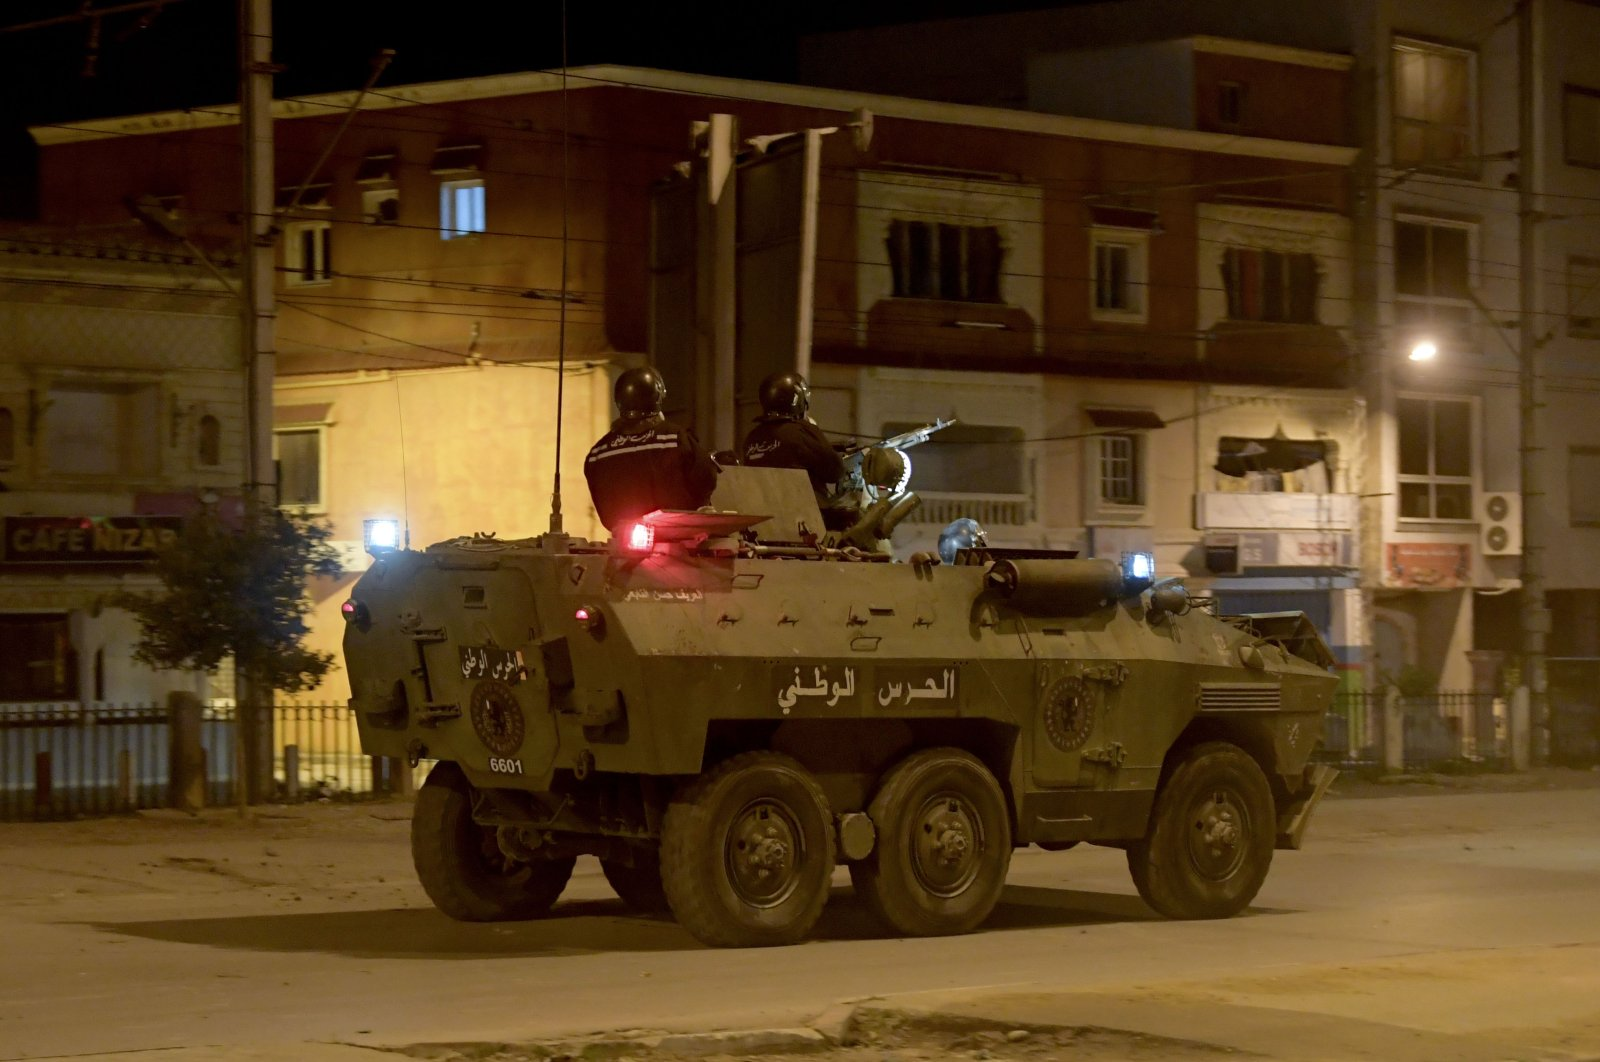 Members of the Tunisian National Guard sit atop their armored vehicle as they deploy on a street amid clashes with demonstrators following a protest in the Ettadhamen neighborhood in the capital Tunis, on Jan. 17, 2021. (AFP Photo)